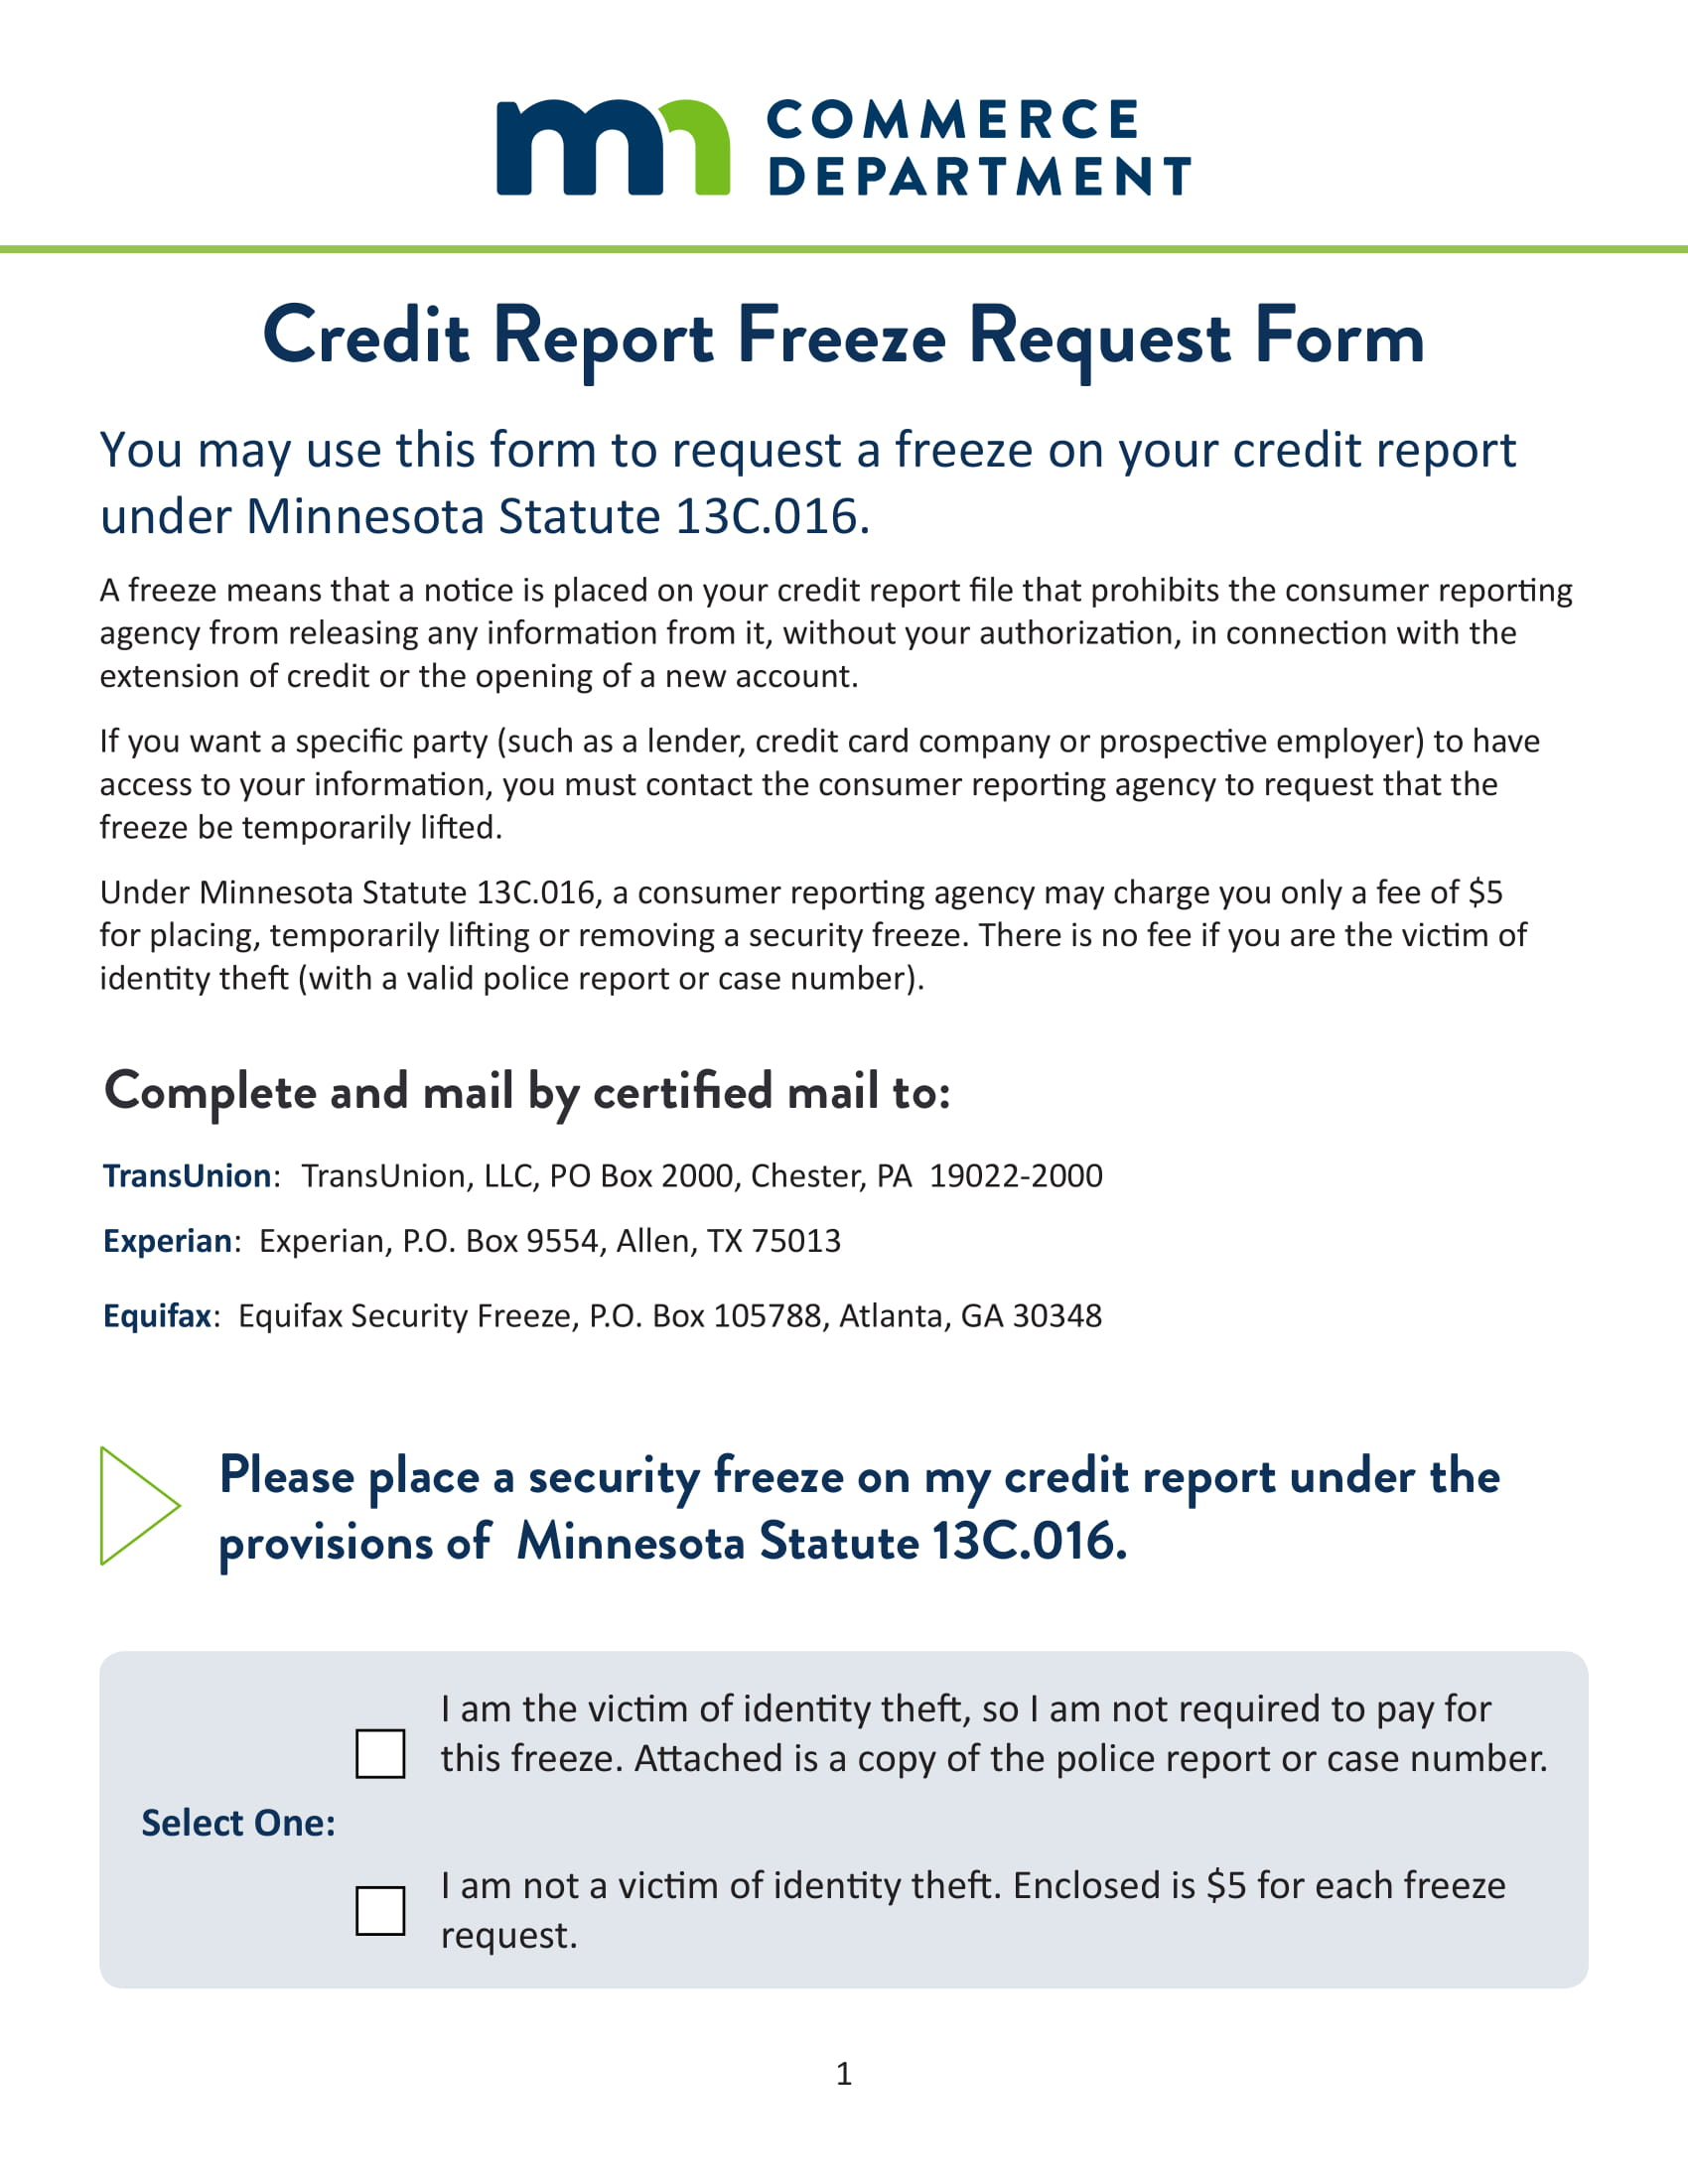 Equifax Credit Report >> FREE 12+ Credit Report Forms in PDF